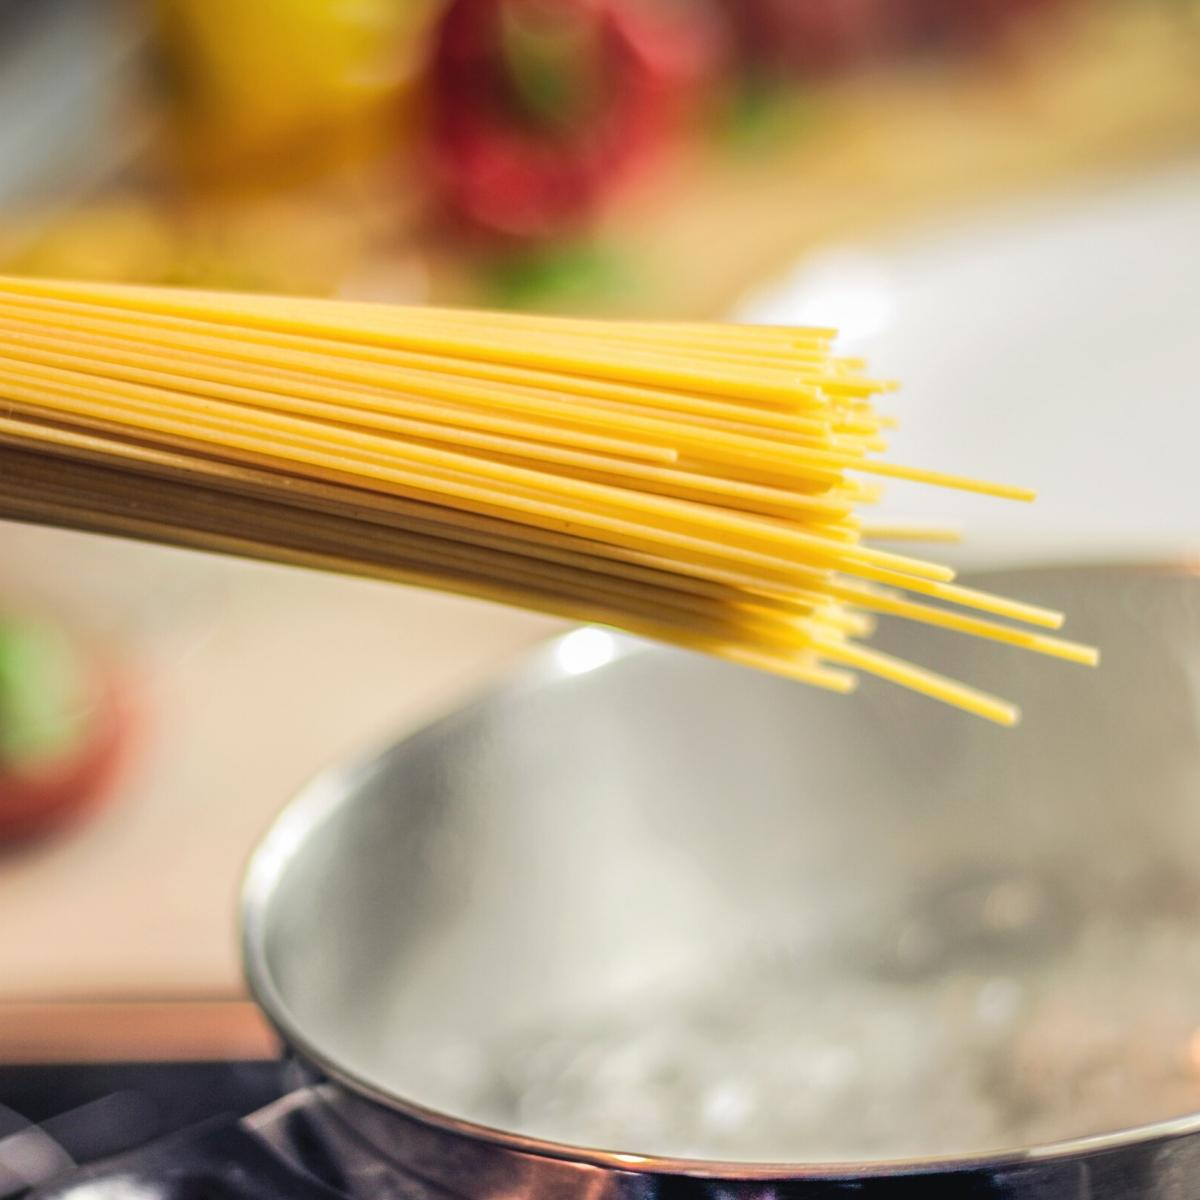 How to cook pasta to perfection for delicious easy family dinners